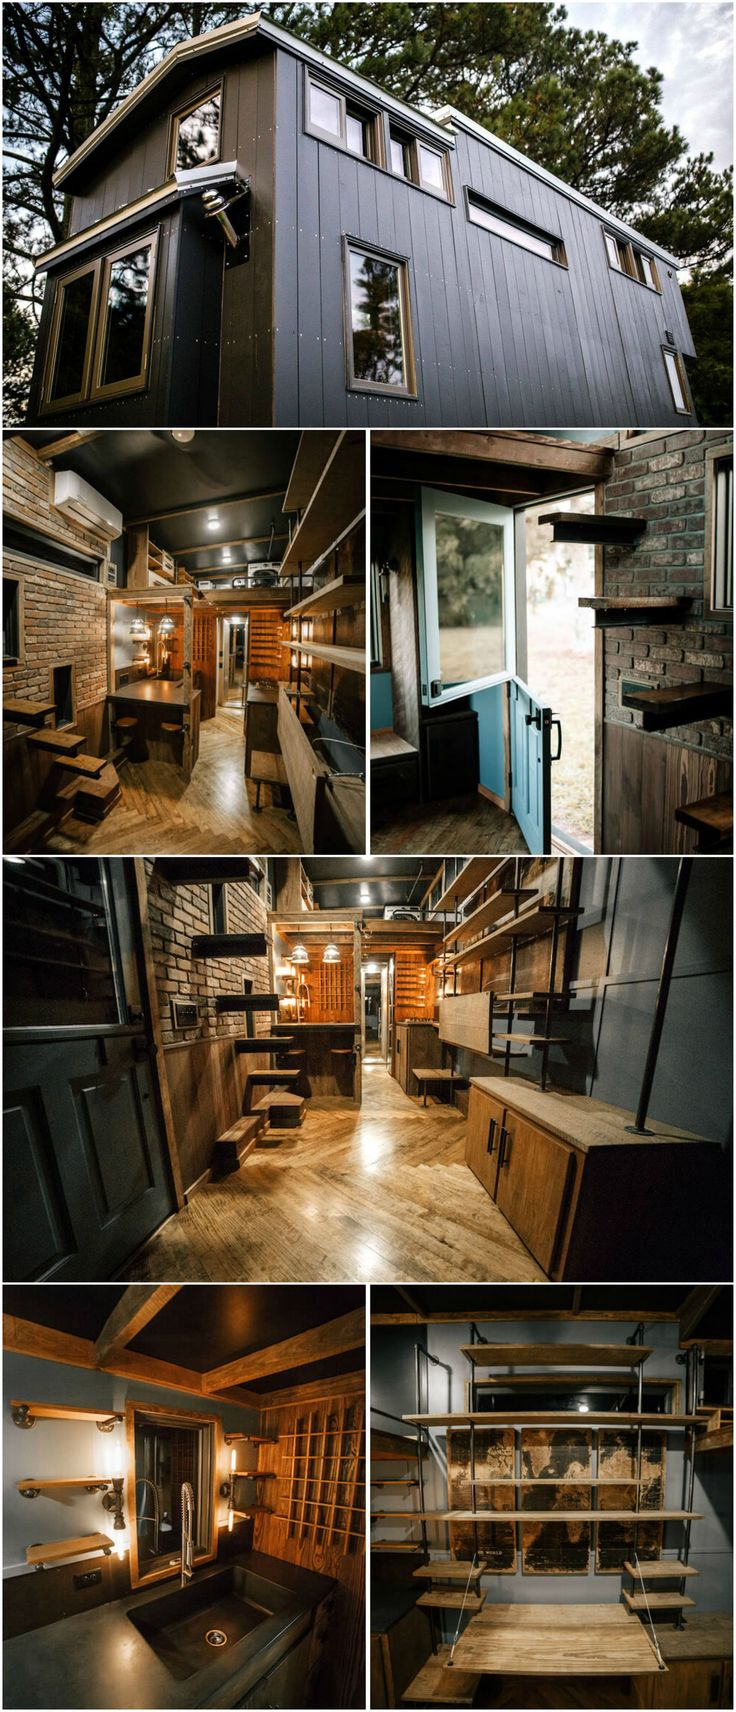 The Rook is a stunning tiny house built by Wind River Tiny Homes.  The exterior consists of painted vertical siding with exposed stainless screws and a custom roofline. Inside is an incredible display of craftsmanship and attention to detail.  Everything from the custom welded bookshelf with fold down desk to the herringbone floors has been matched to fit the house's theme.